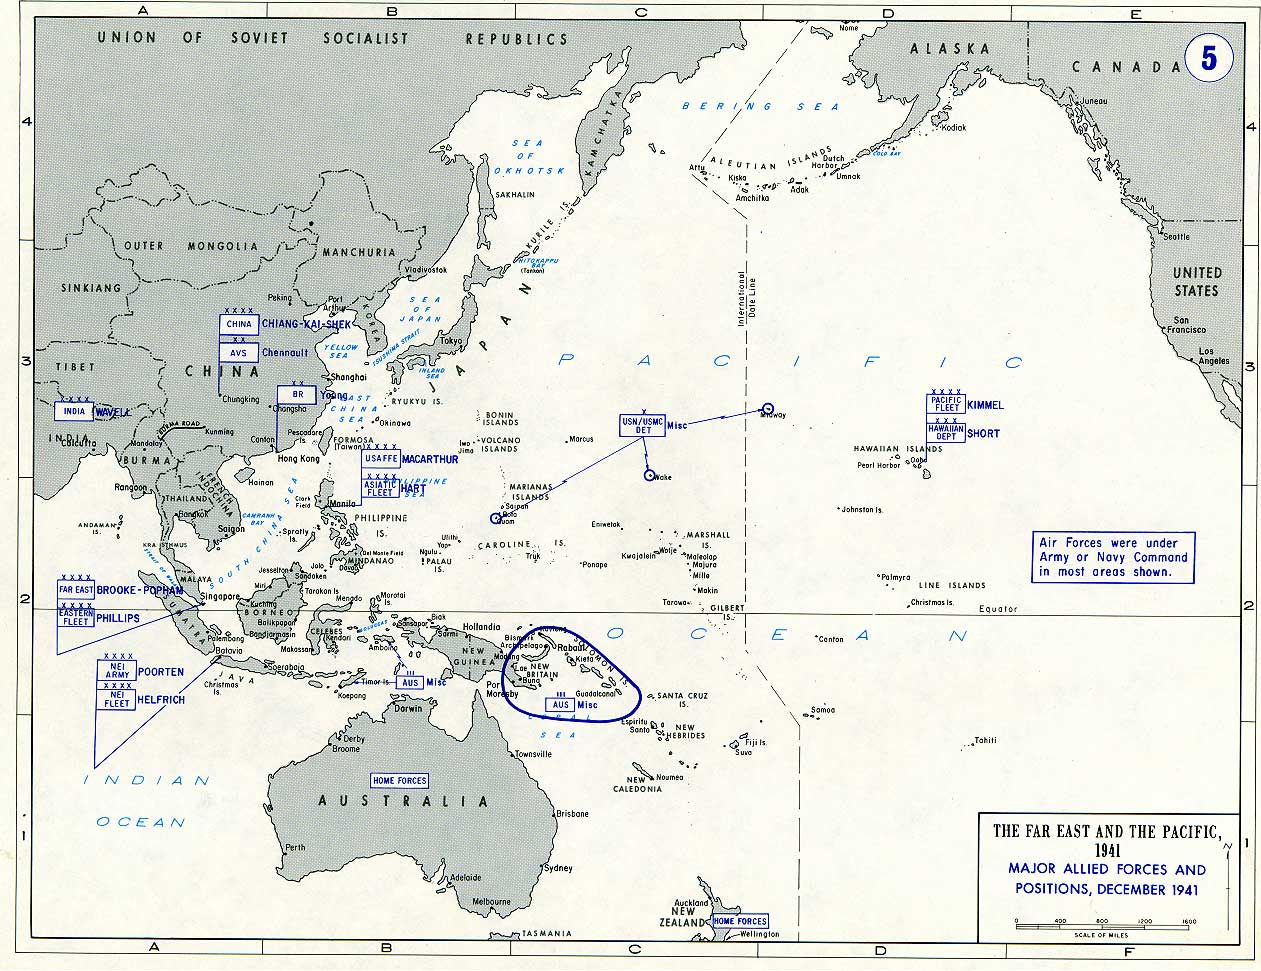 Plans and forces at the beginning of the war december 1941